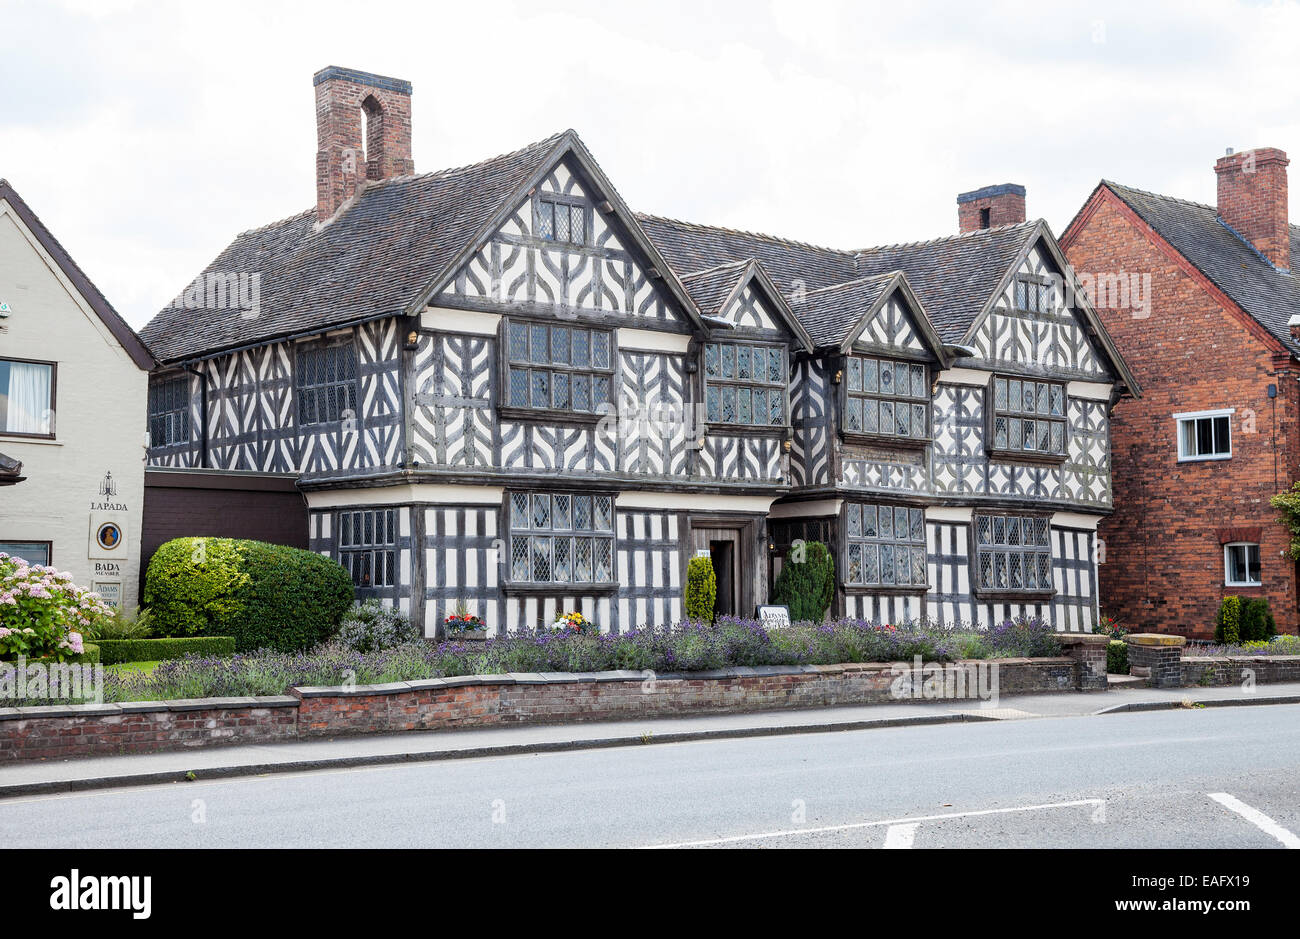 Churche's Mansion is a timber-framed, black-and-white Elizabethan mansion house at Hospital Street in Nantwich - Stock Image